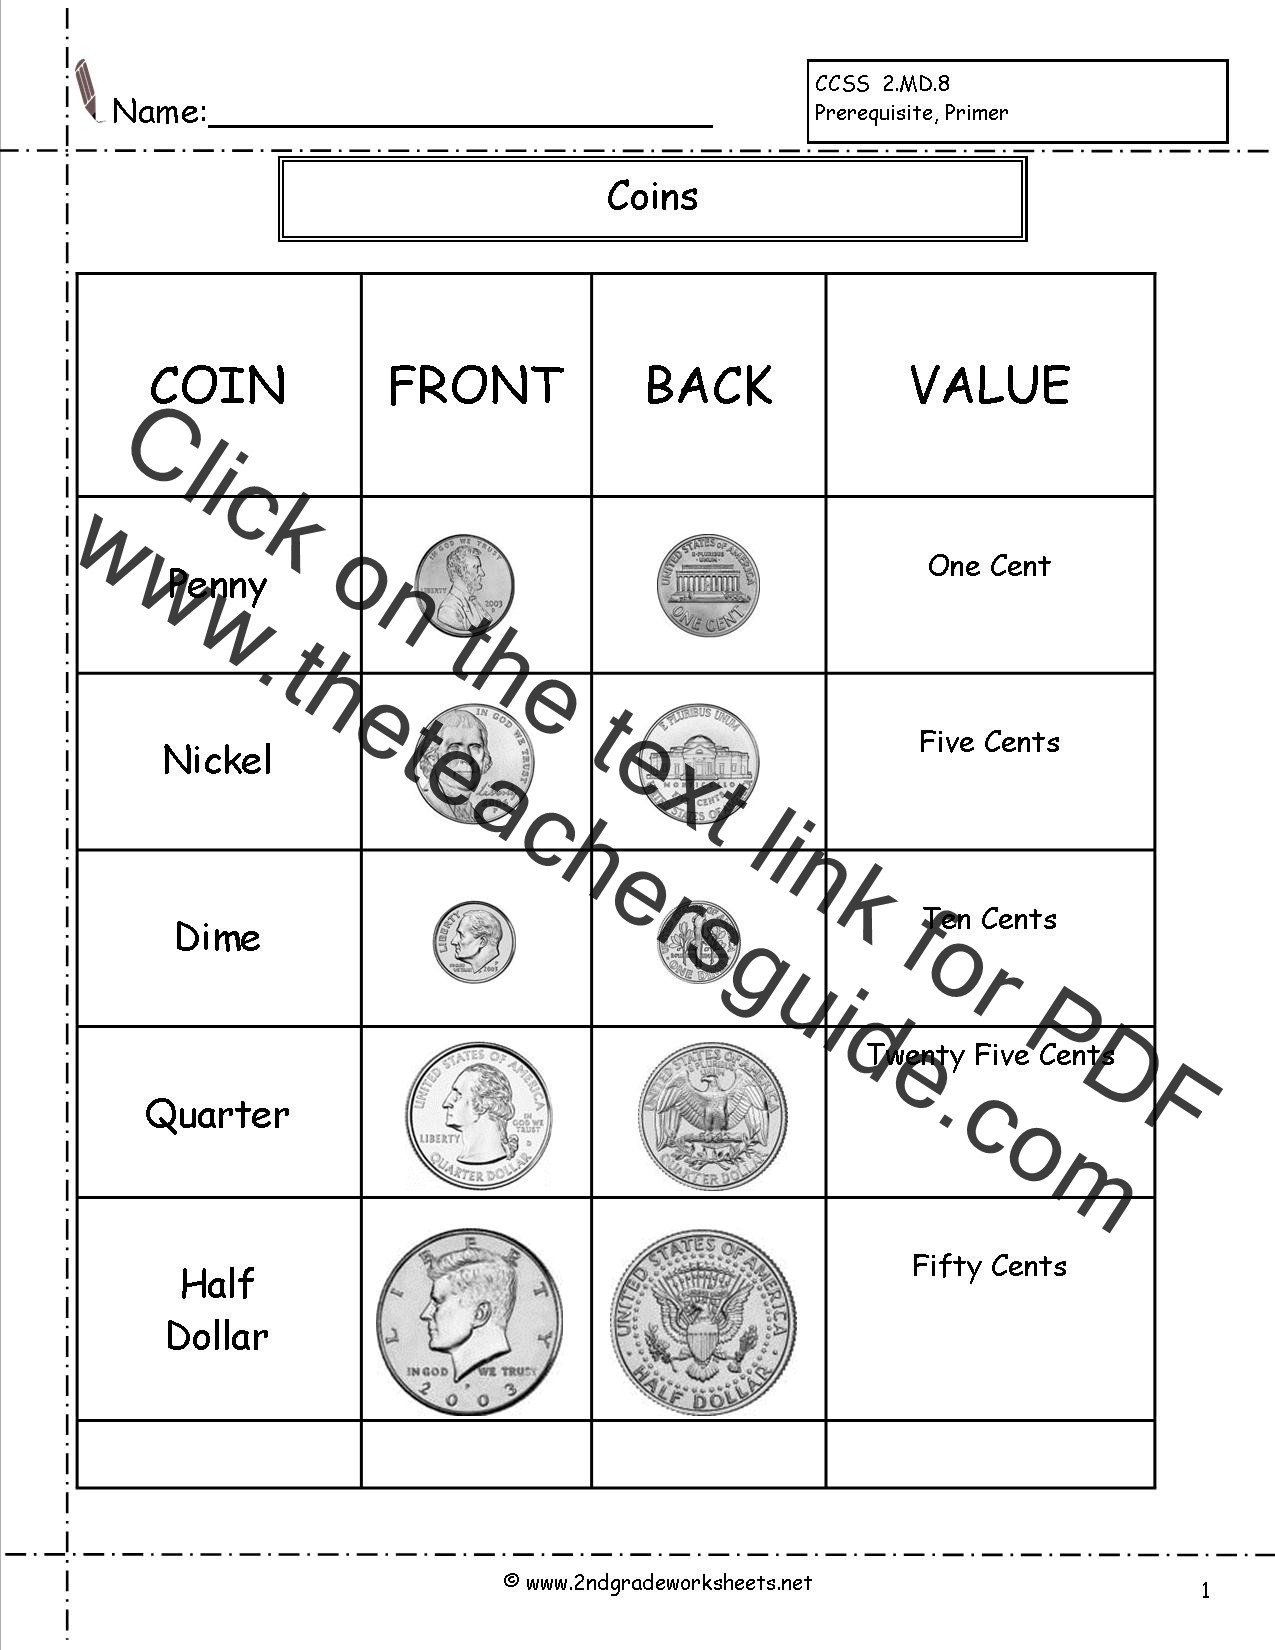 Adding and Subtracting Money Worksheets Counting Coins and Money Worksheets and Printouts